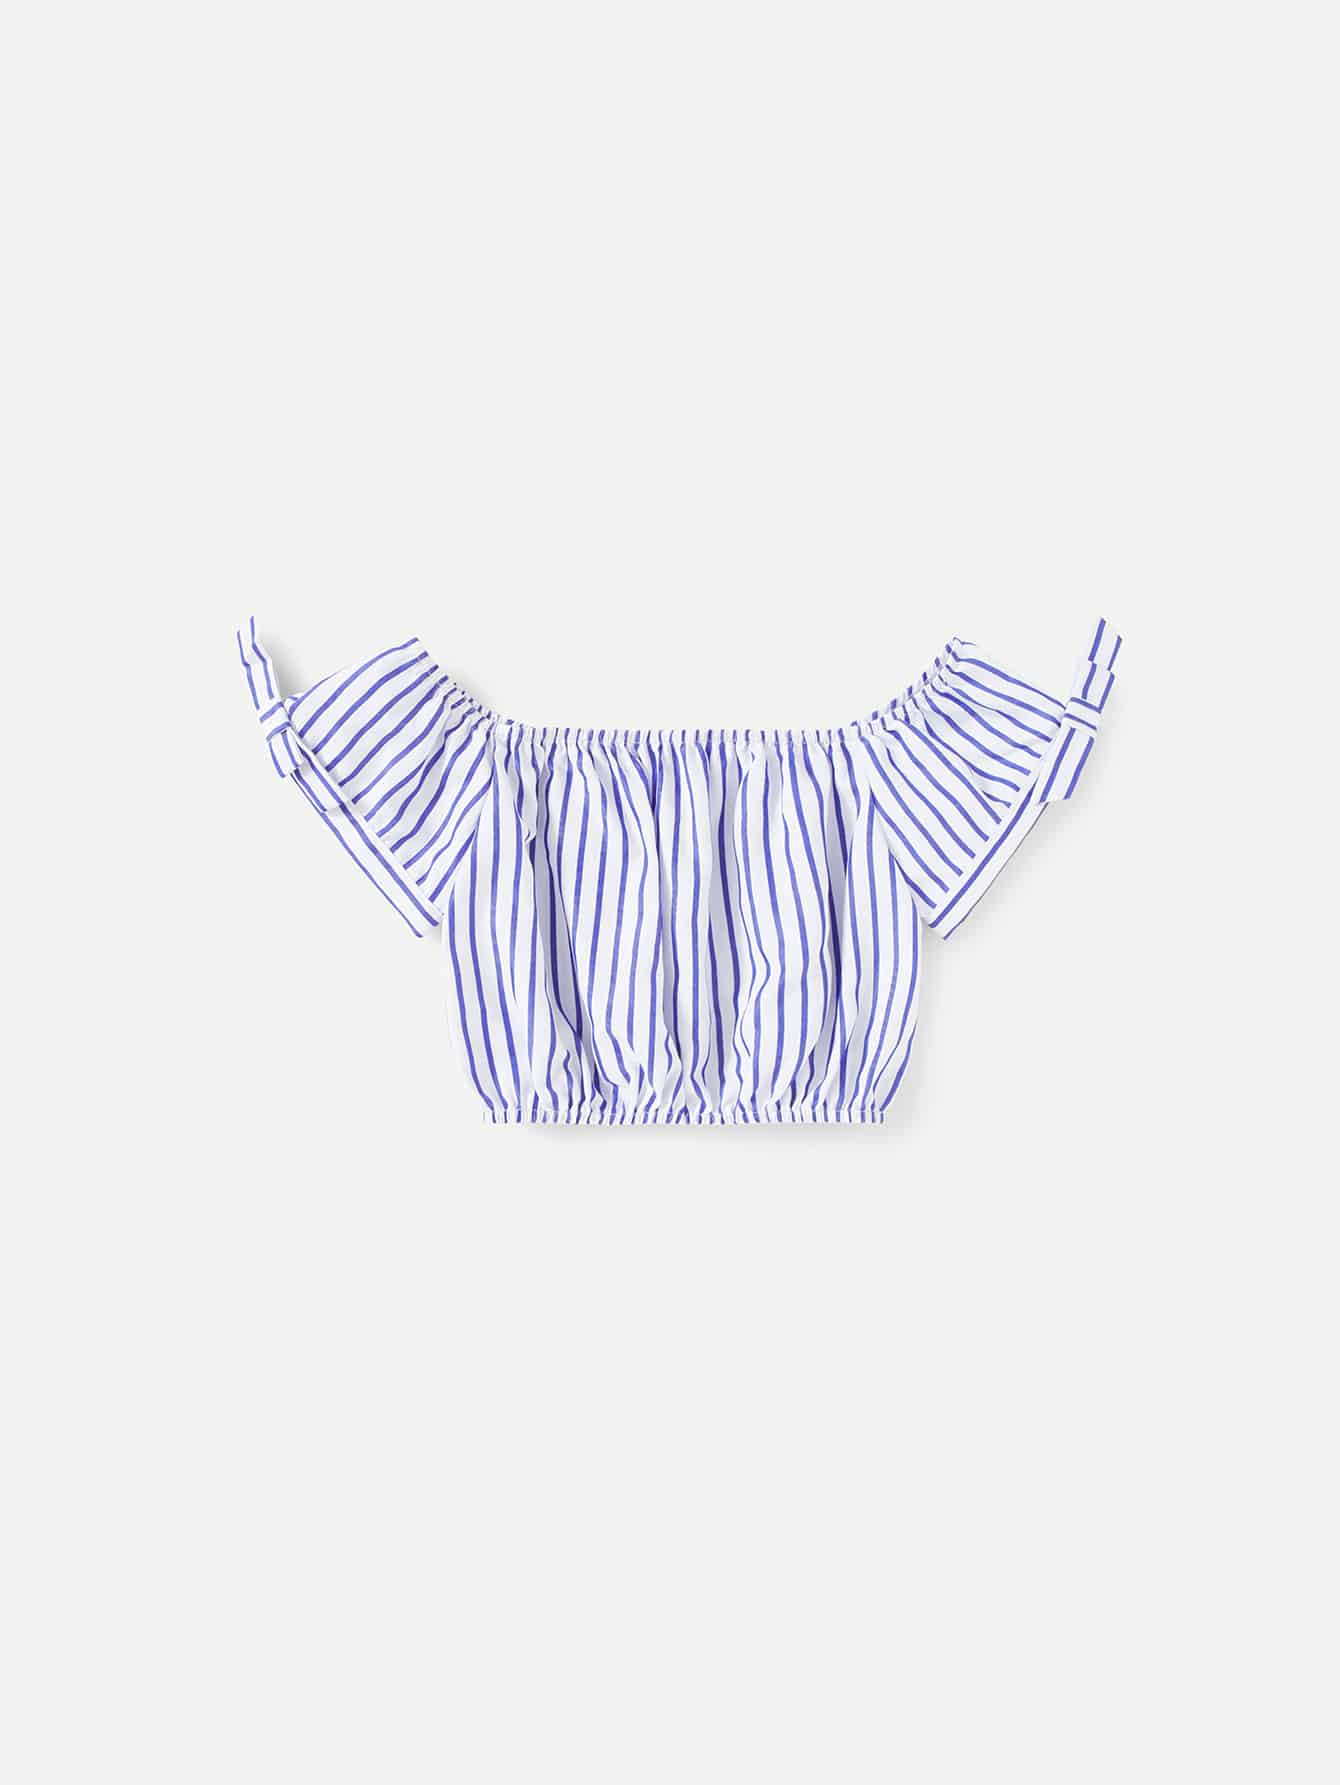 Bow Detail Cuff Striped Crop Top mesh shoulder lace applique bow detail striped top